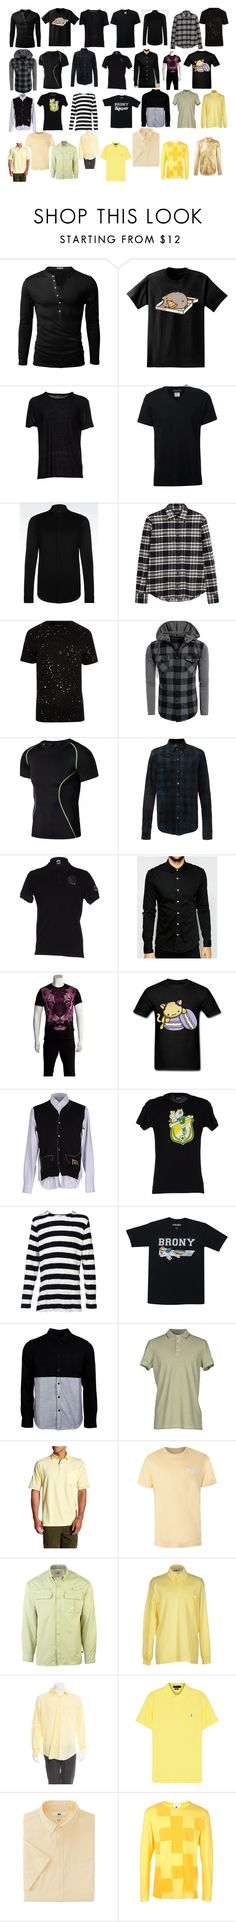 """""""Men's shirts #3"""" by asherthecrimsonfox ❤ liked on Polyvore featuring Doublju, Pusheen, T By Alexander Wang, Neil Barrett, Emporio Armani, Dsquared2, River Island, AMIRI, ASOS and Just Cavalli"""